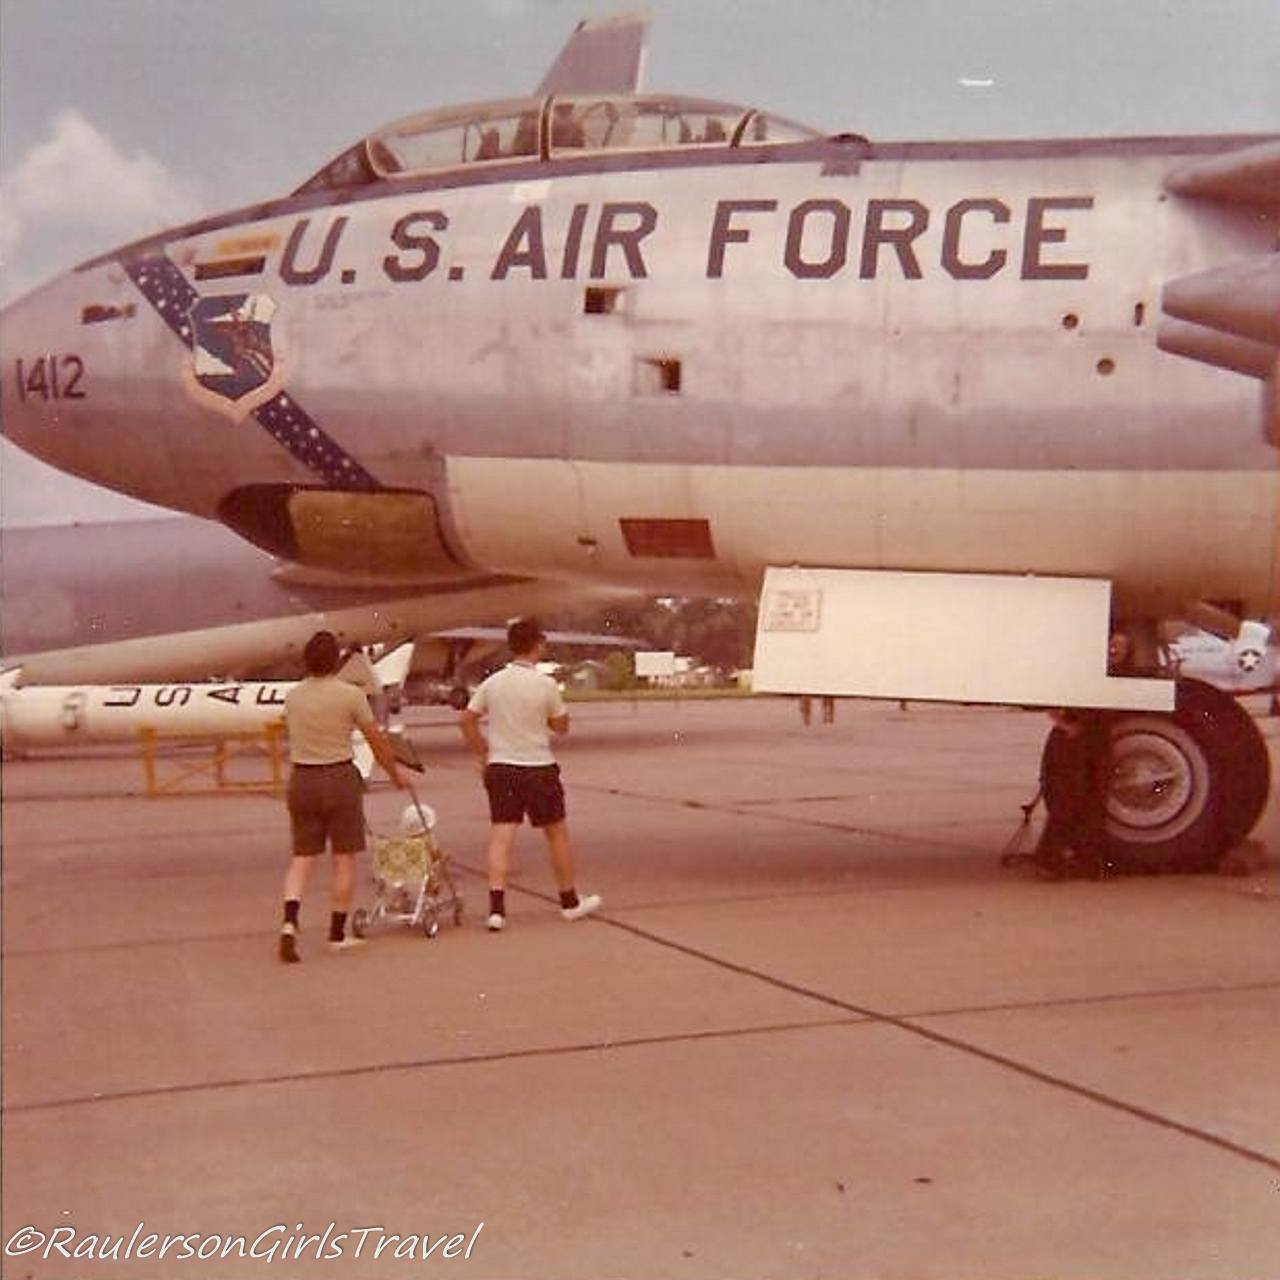 Dad pushing Heather in stroller toward U.S. Air Force plane at an Air Show